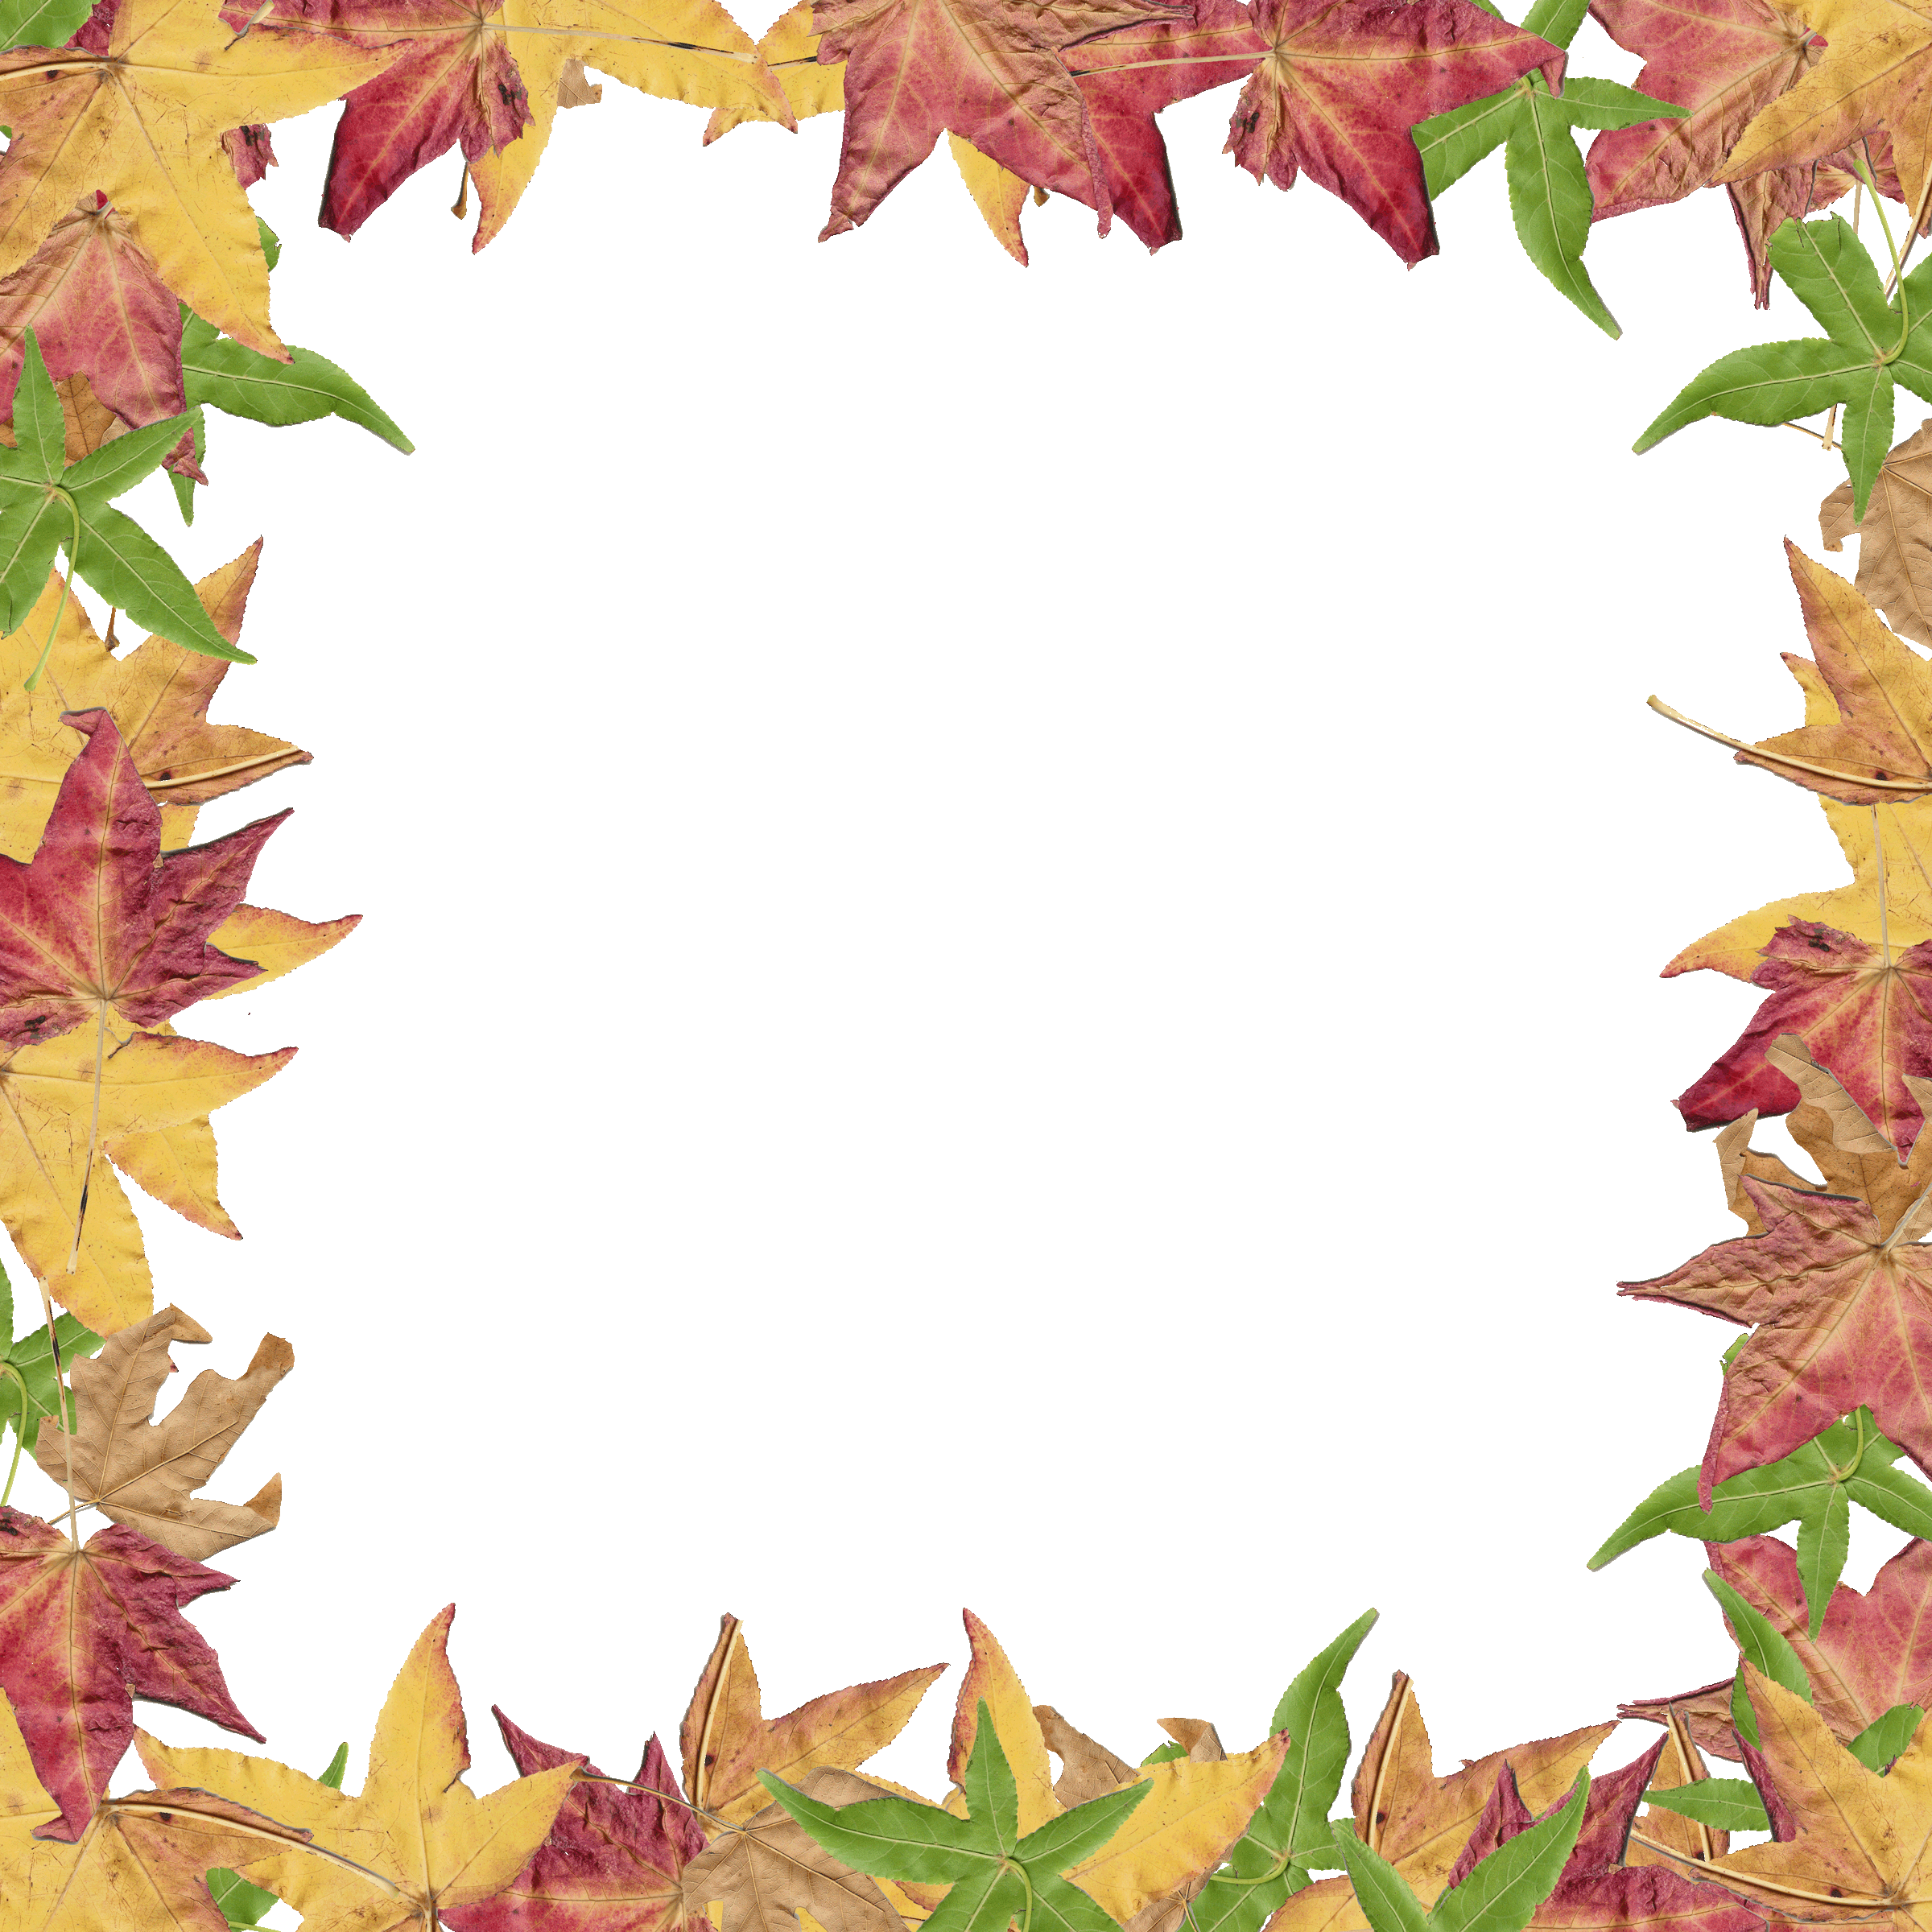 Autumn border png. Leaves overlay inspirations pinterest